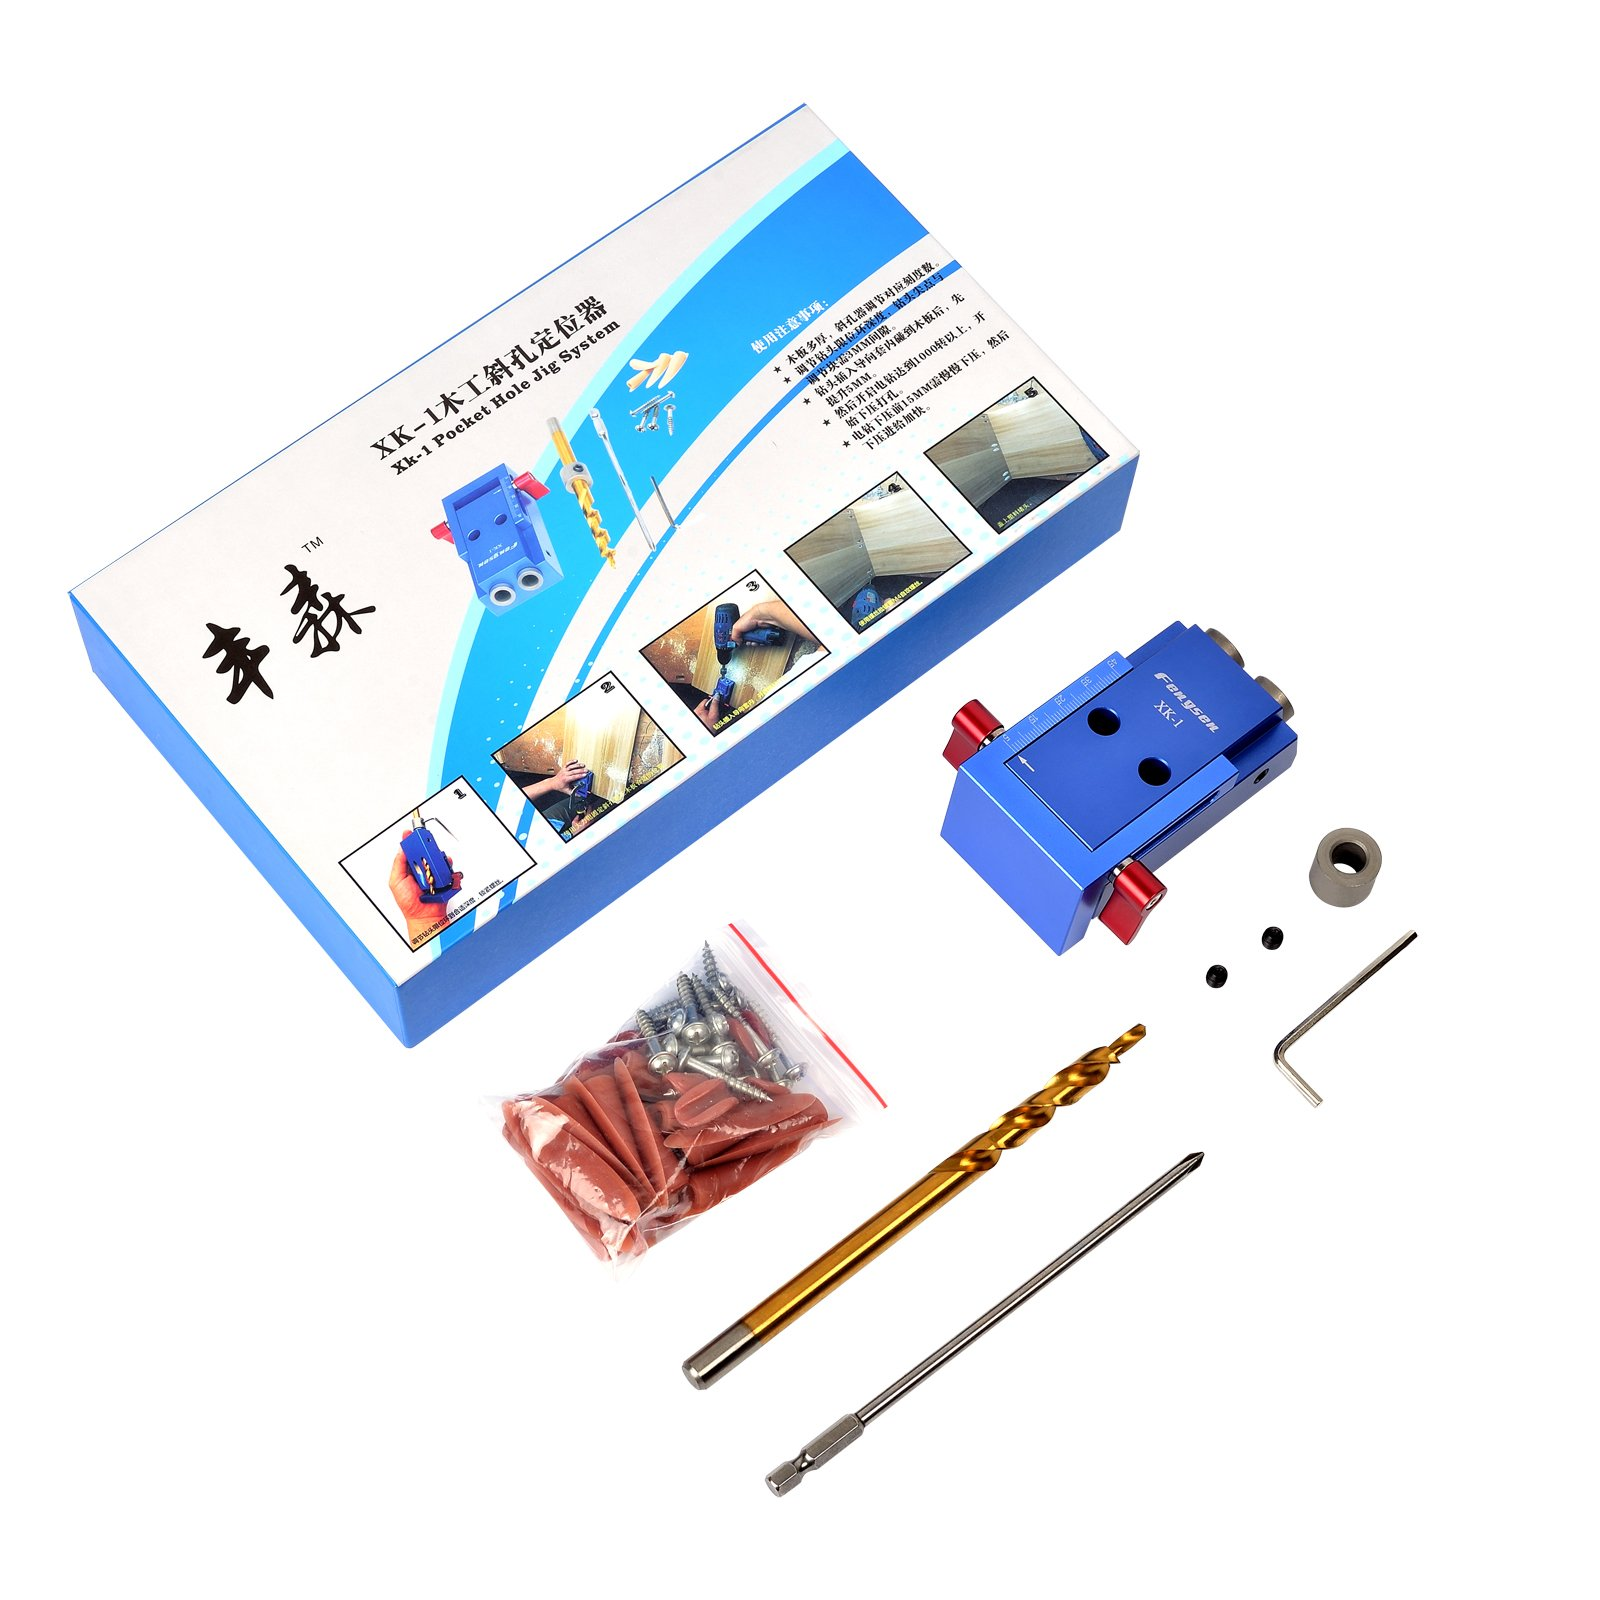 SHUOGOU Mini Pocket Slant Hole Jig Kit + 9.5mm Step Drilling Bit Dowelling Jig Wood Work Tool Set